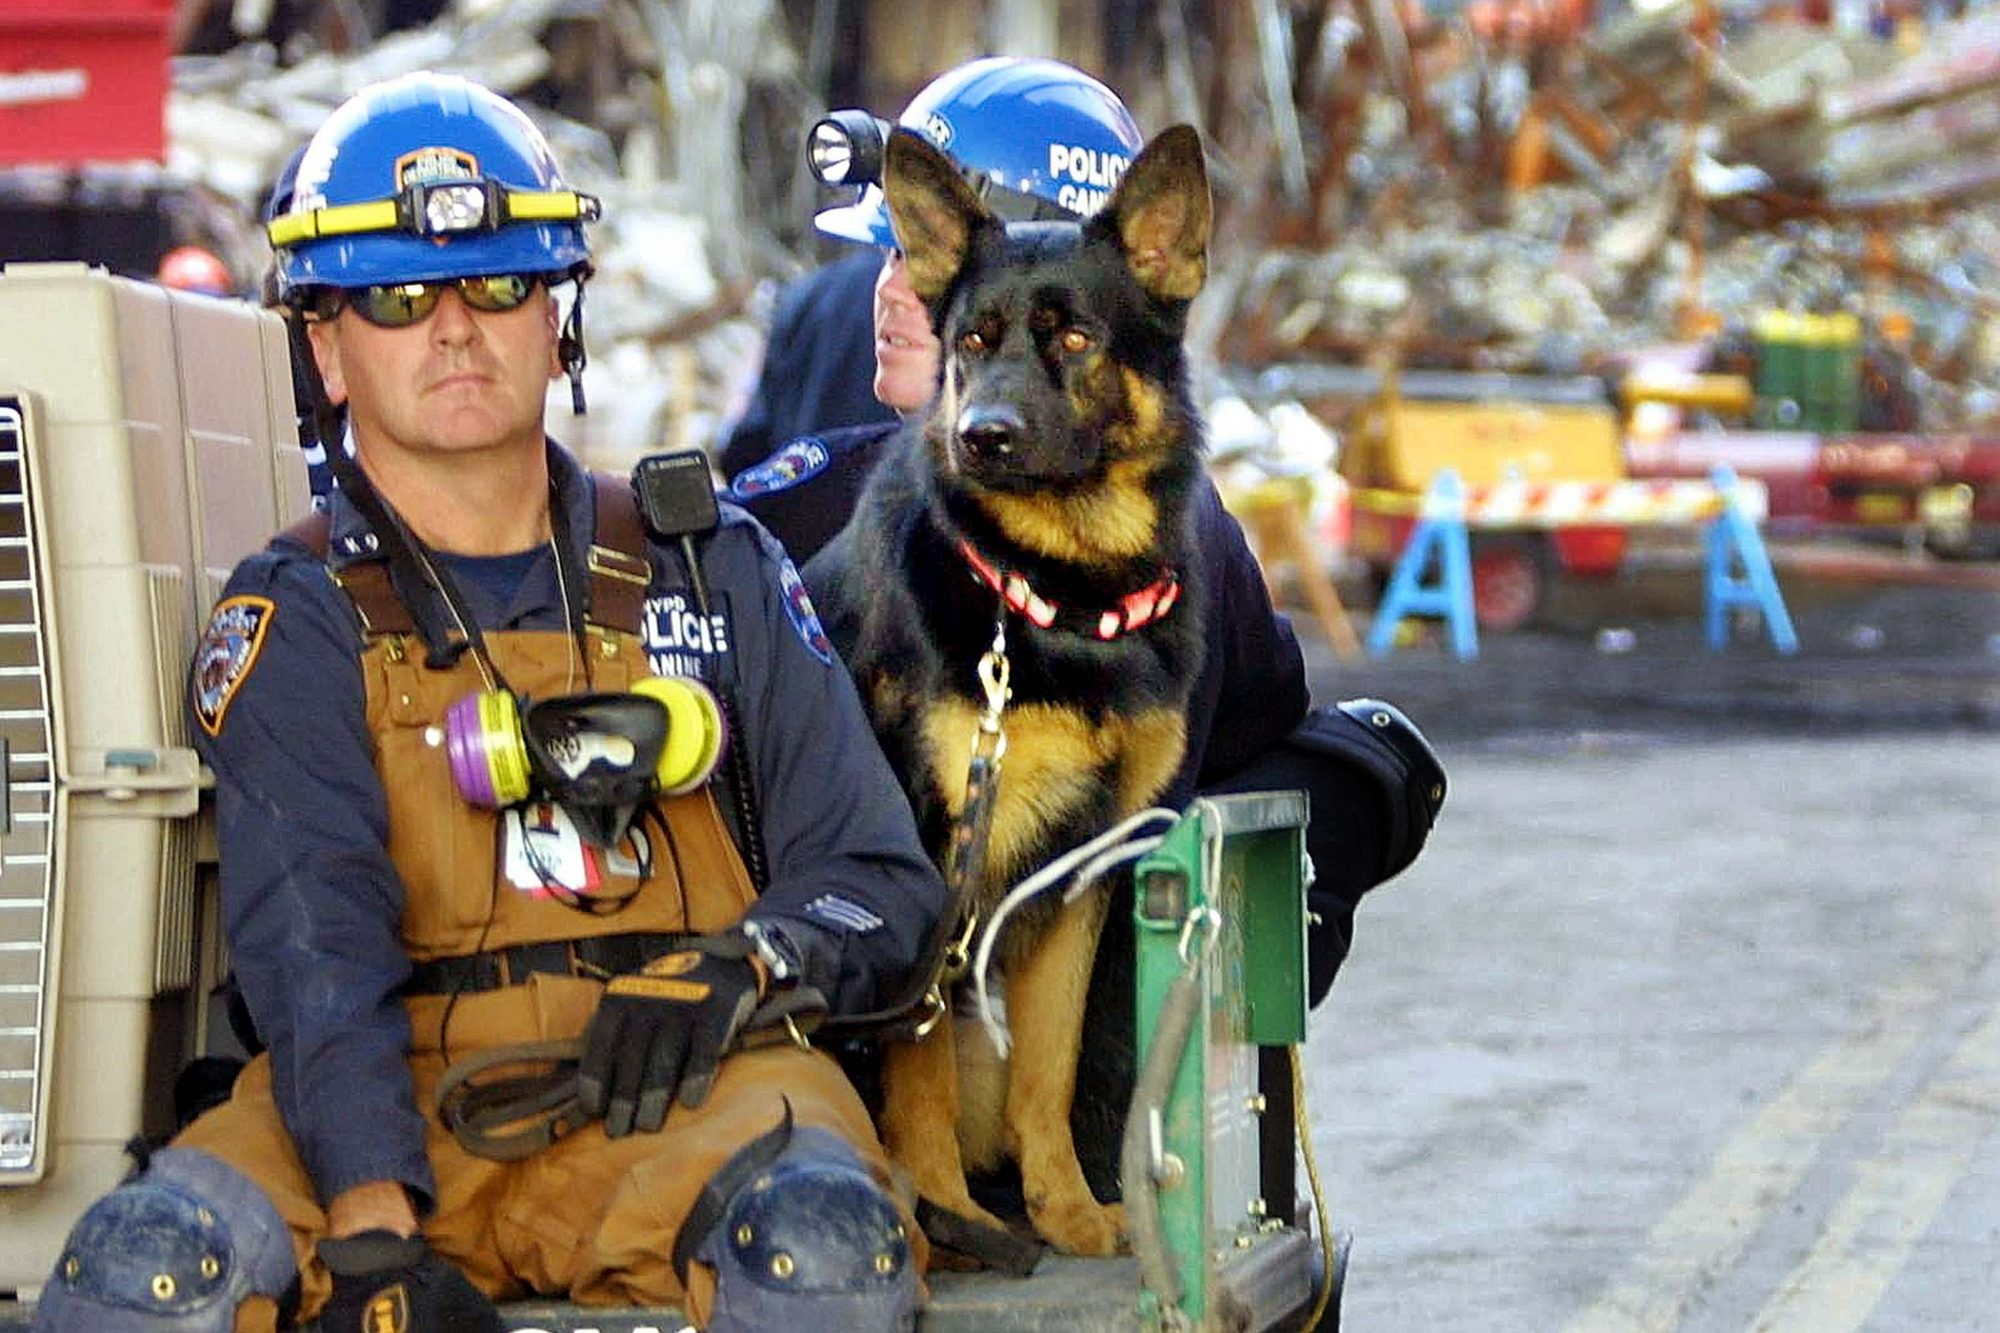 9/11 Dog sitting with two men in blue helmets